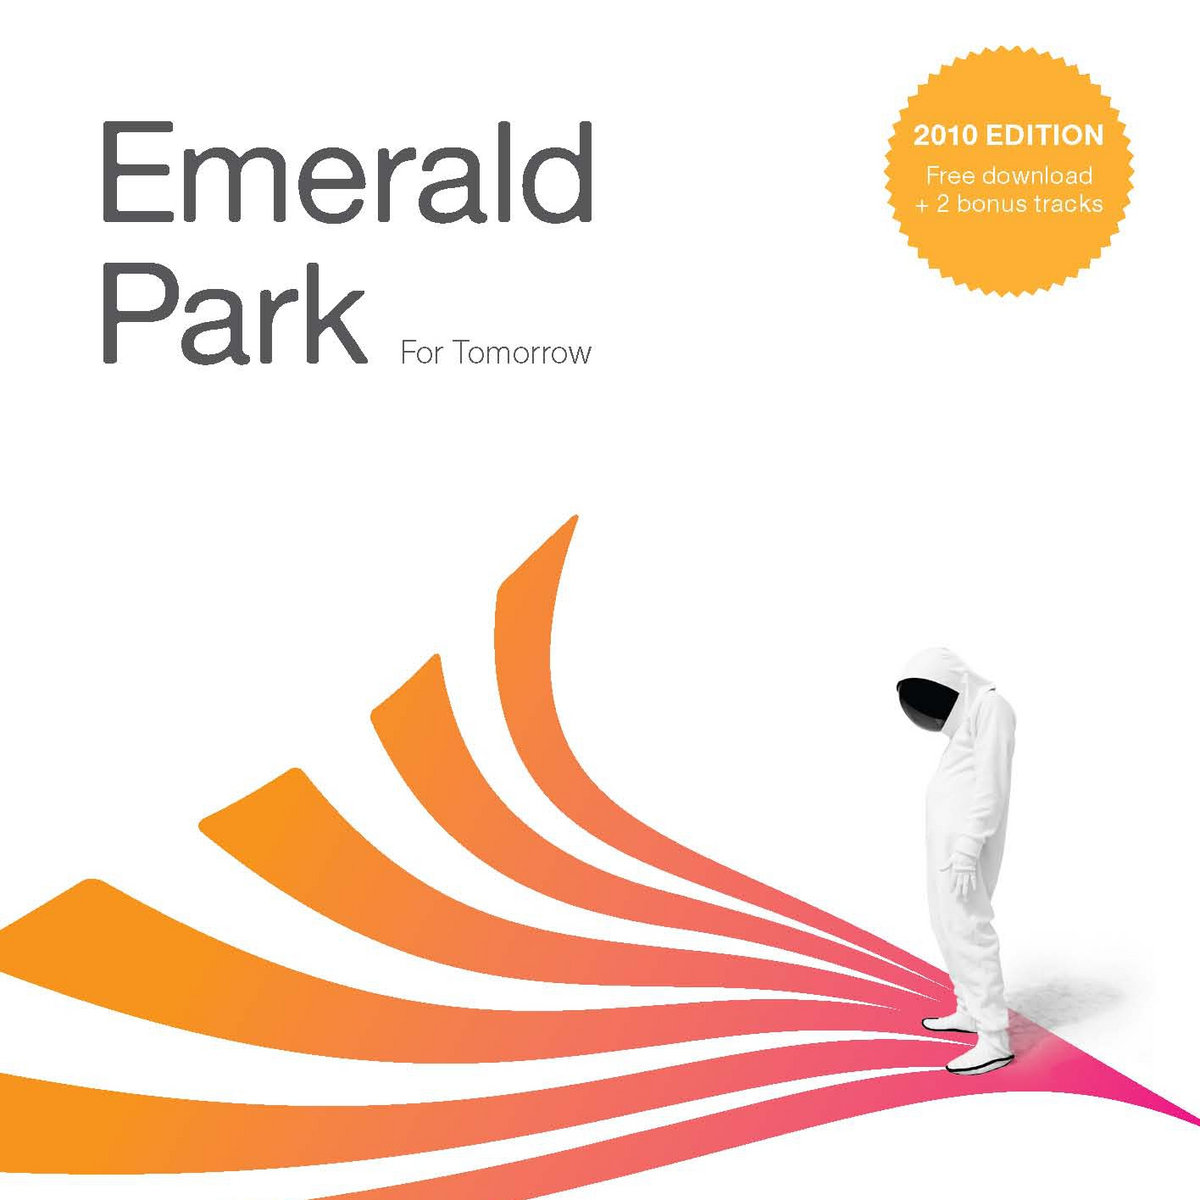 Emerald Park – For Tomorrow (2010 Edition)